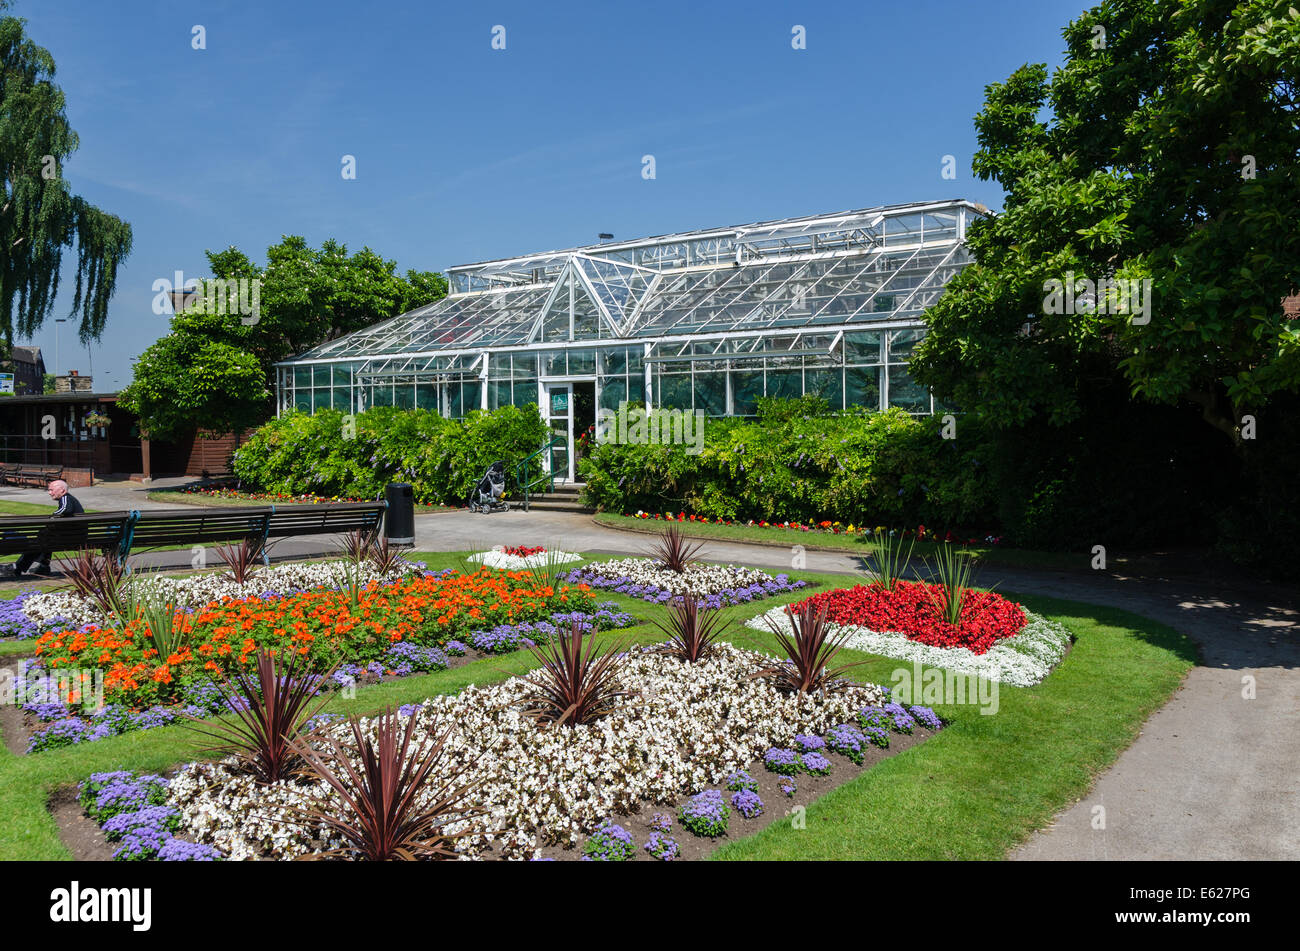 Glasshouses and colourful flowerbeds in Victoria Park in Stafford - Stock Image